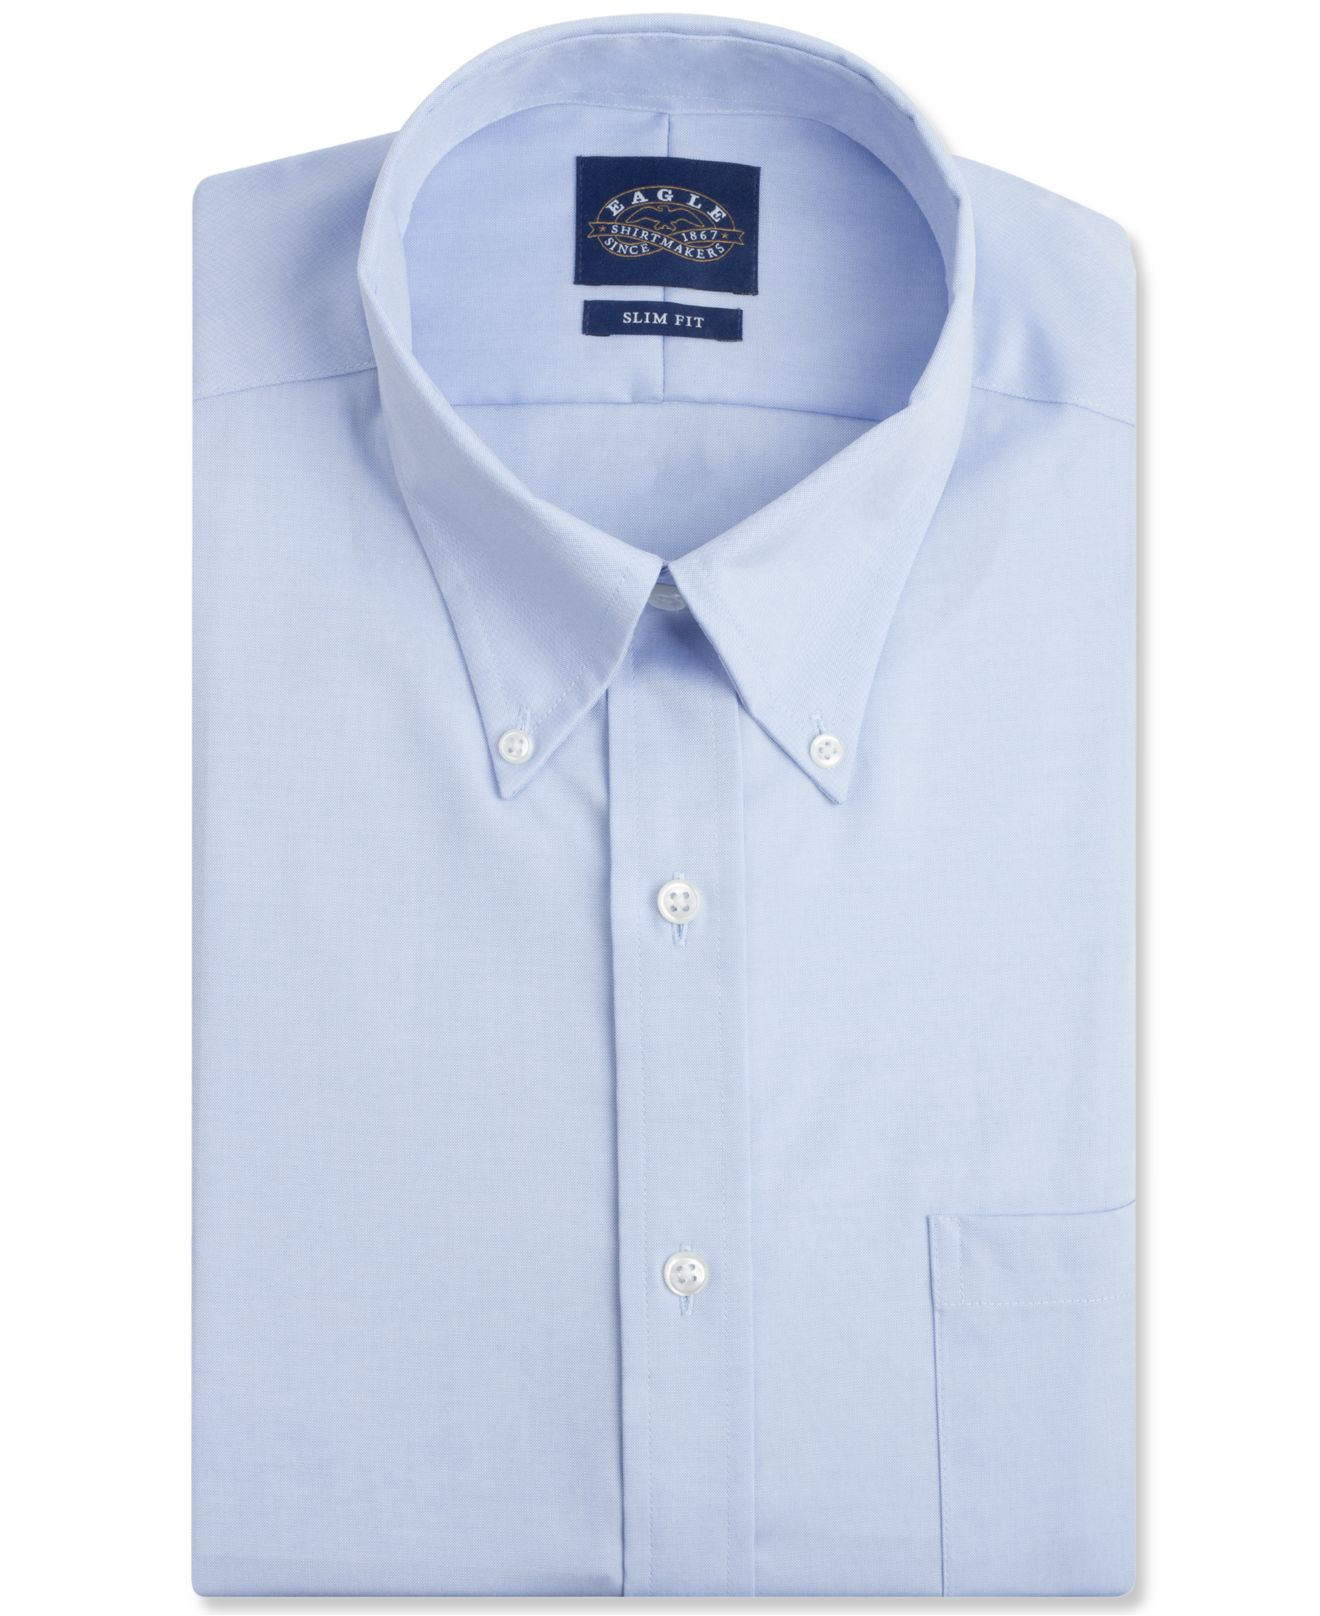 Eagle men 39 s slim fit non iron pinpoint dress shirt in blue for No iron dress shirts for men